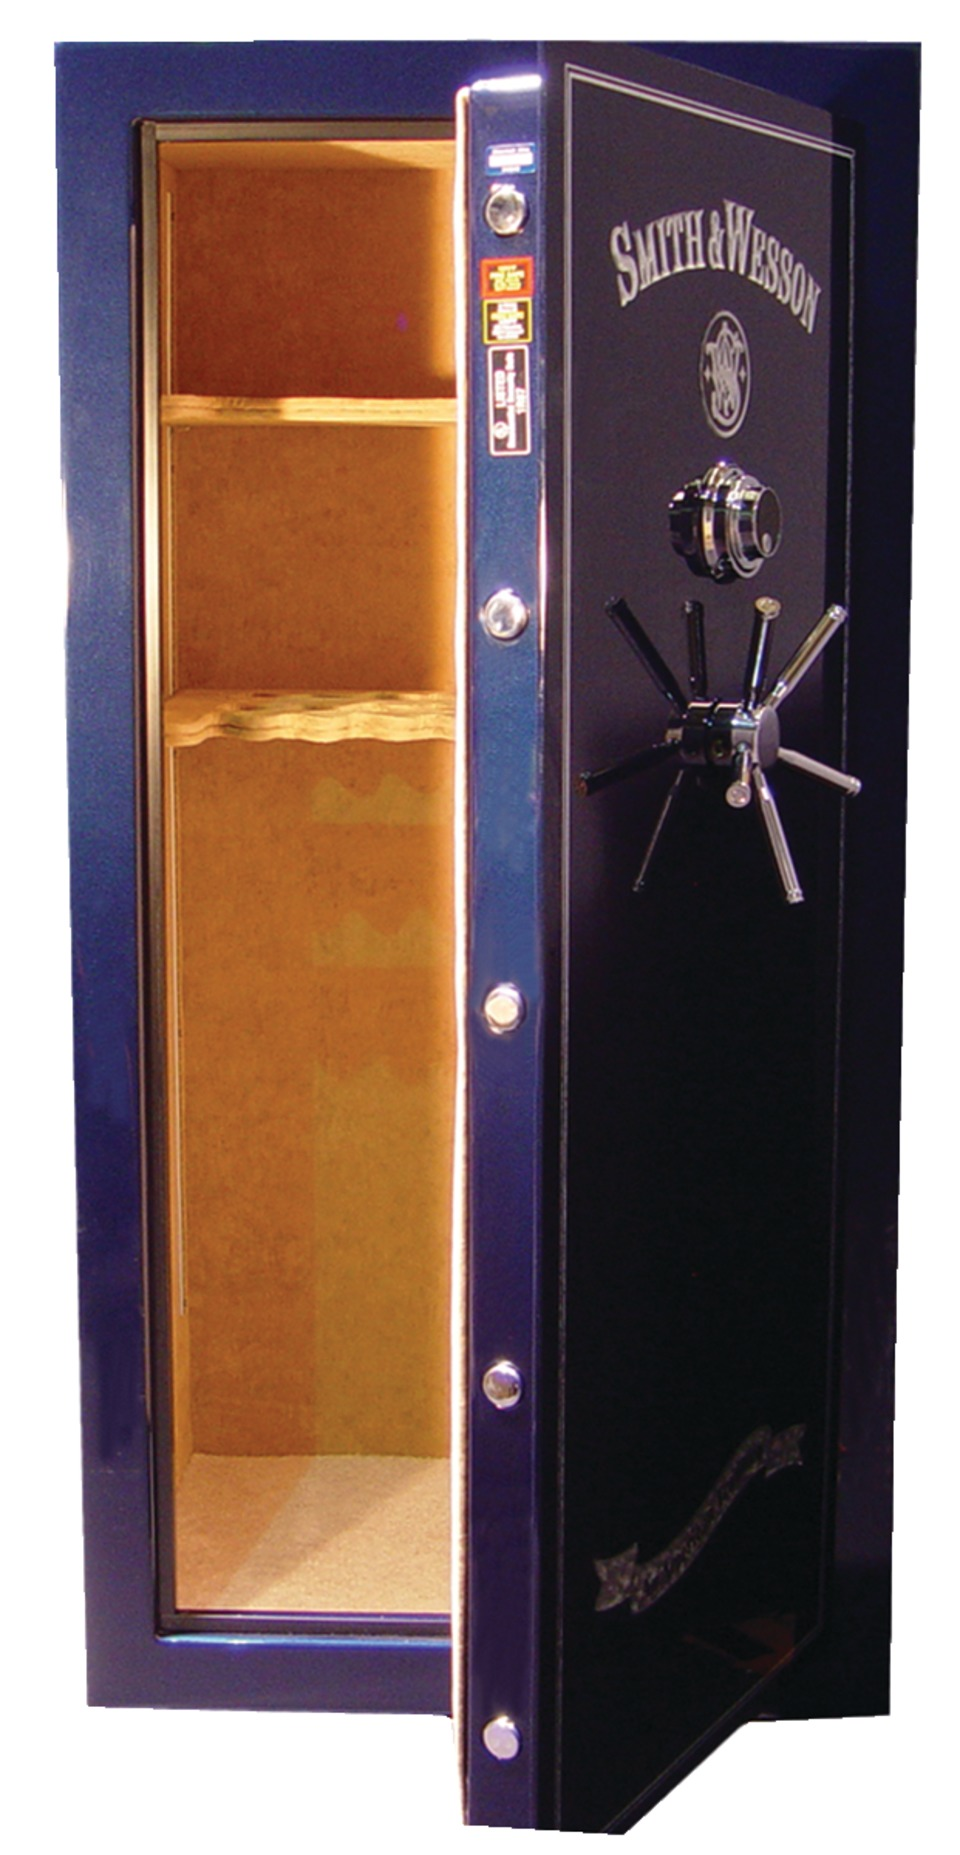 Heritage Safe Co Smith Wesson Safes In Firearm Accessories